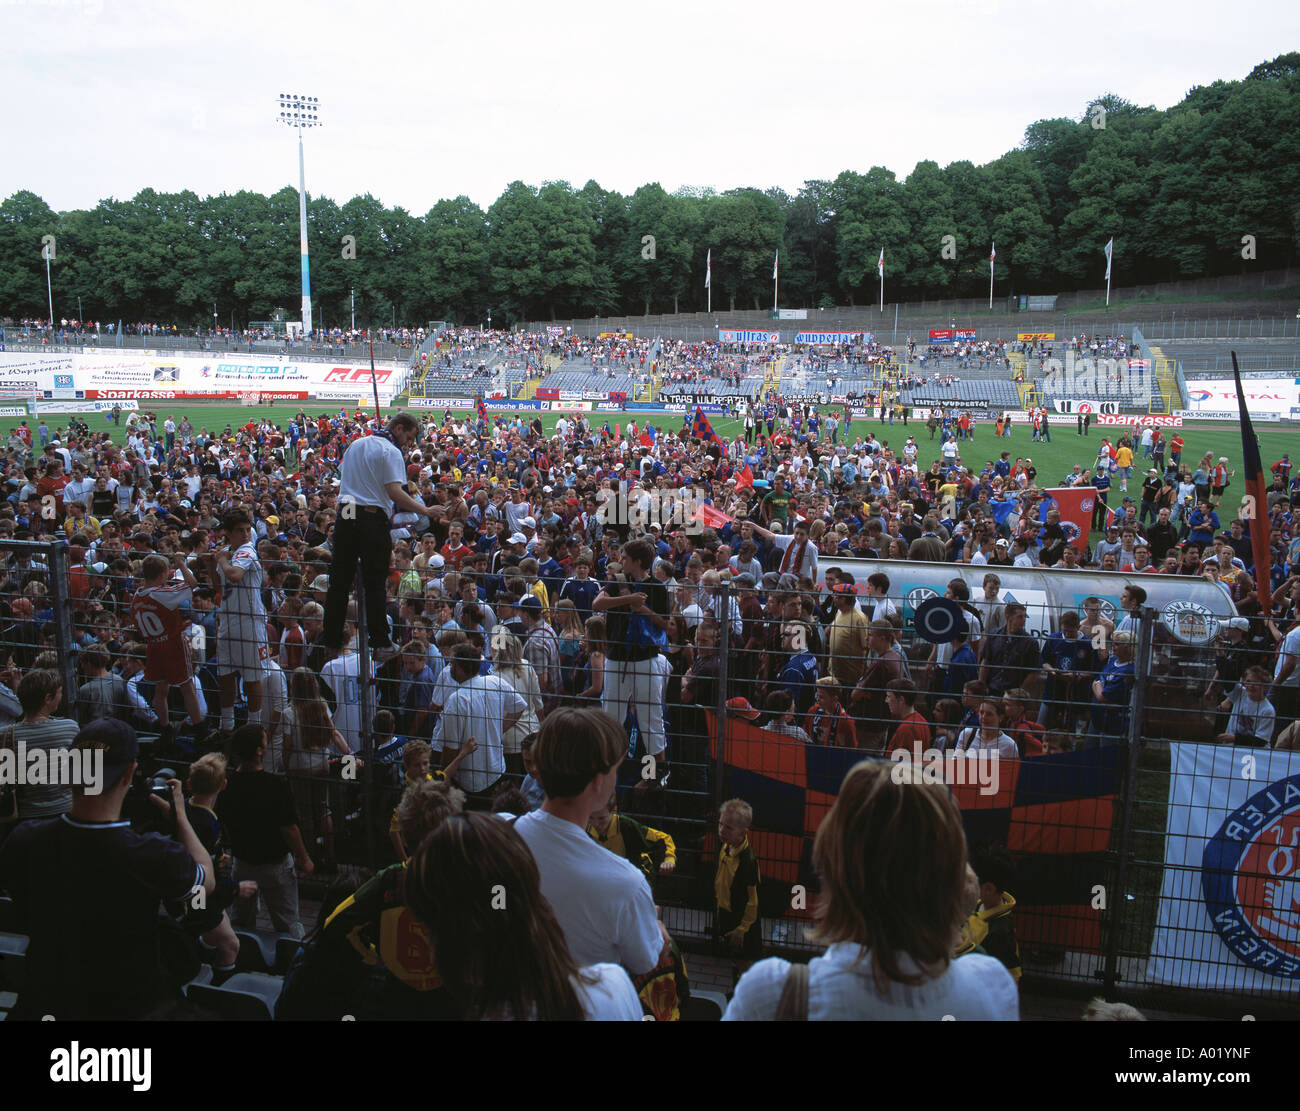 football, Regionalliga North, 2003/2004, SV Wuppertal versus Werder Bremen (A) 1:0, Stadium Am Zoo, spectators, fans, fans in front auf the grandstand, fans celebrating their team and the end of the saison - Stock Image